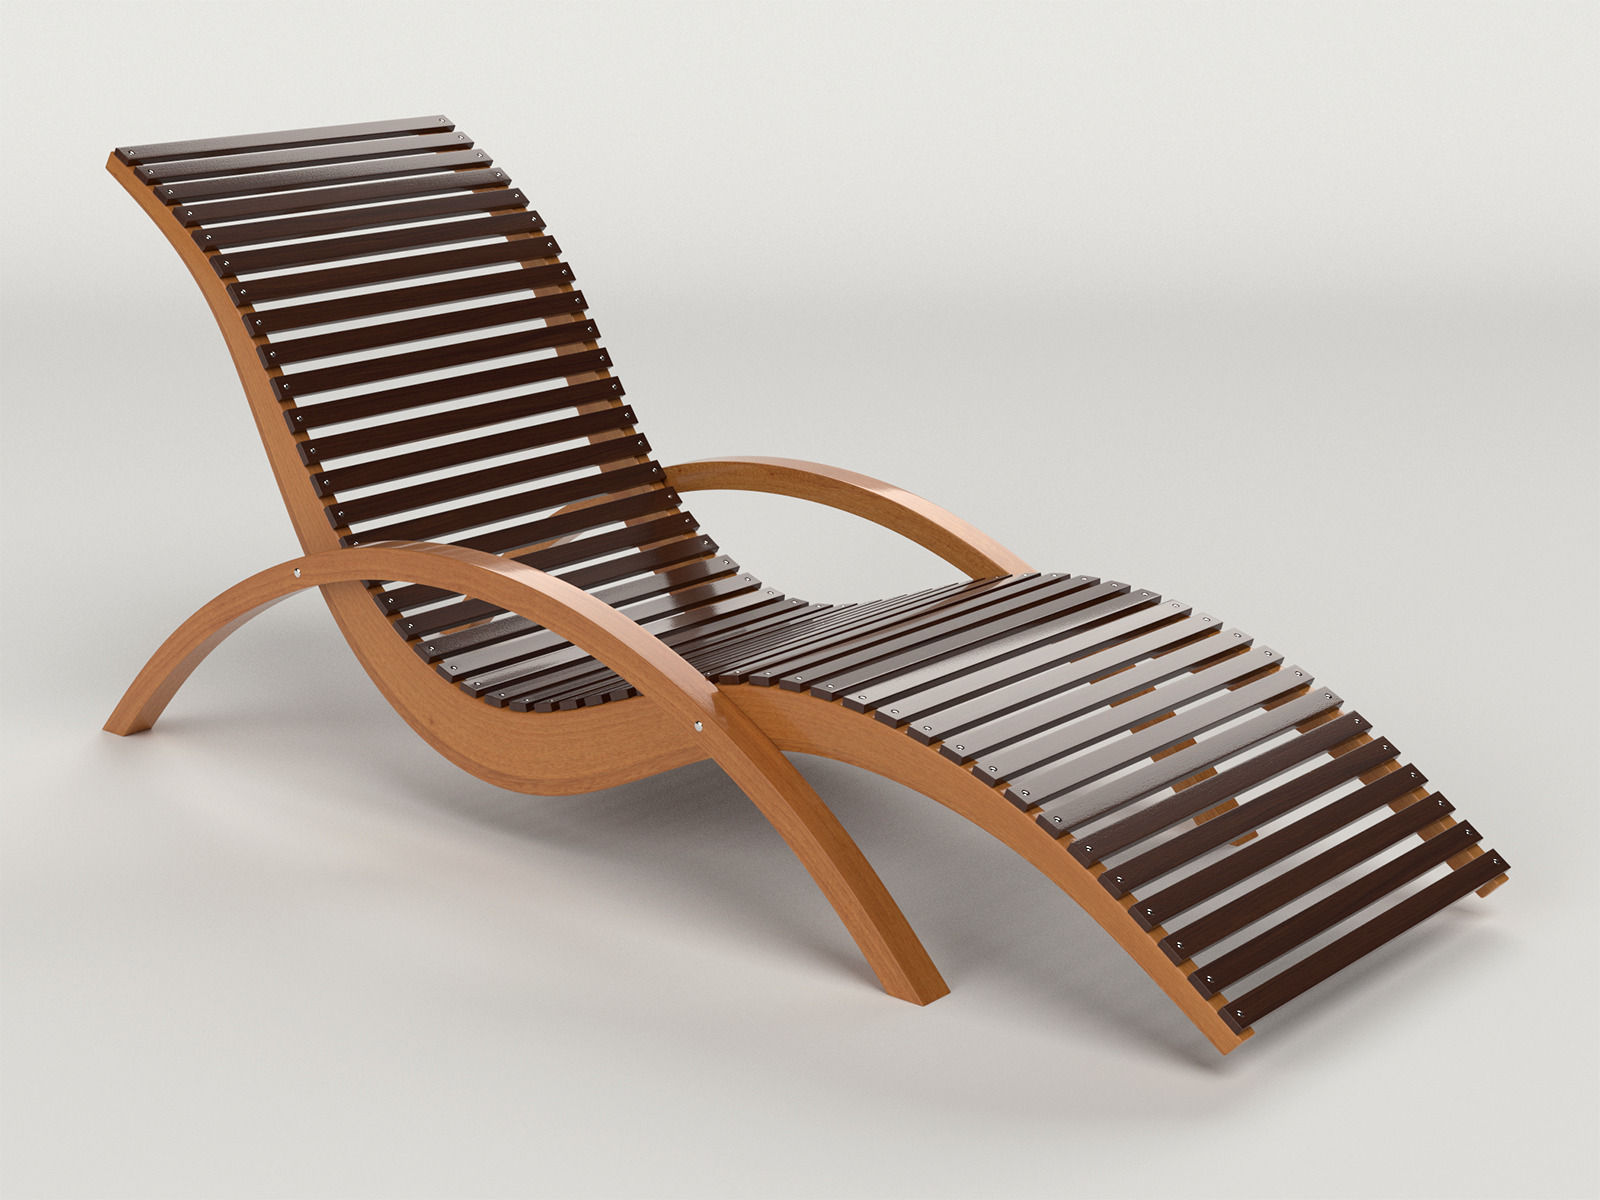 Lounge chair outdoor wood patio deck 3d model obj mtl for Deck furniture